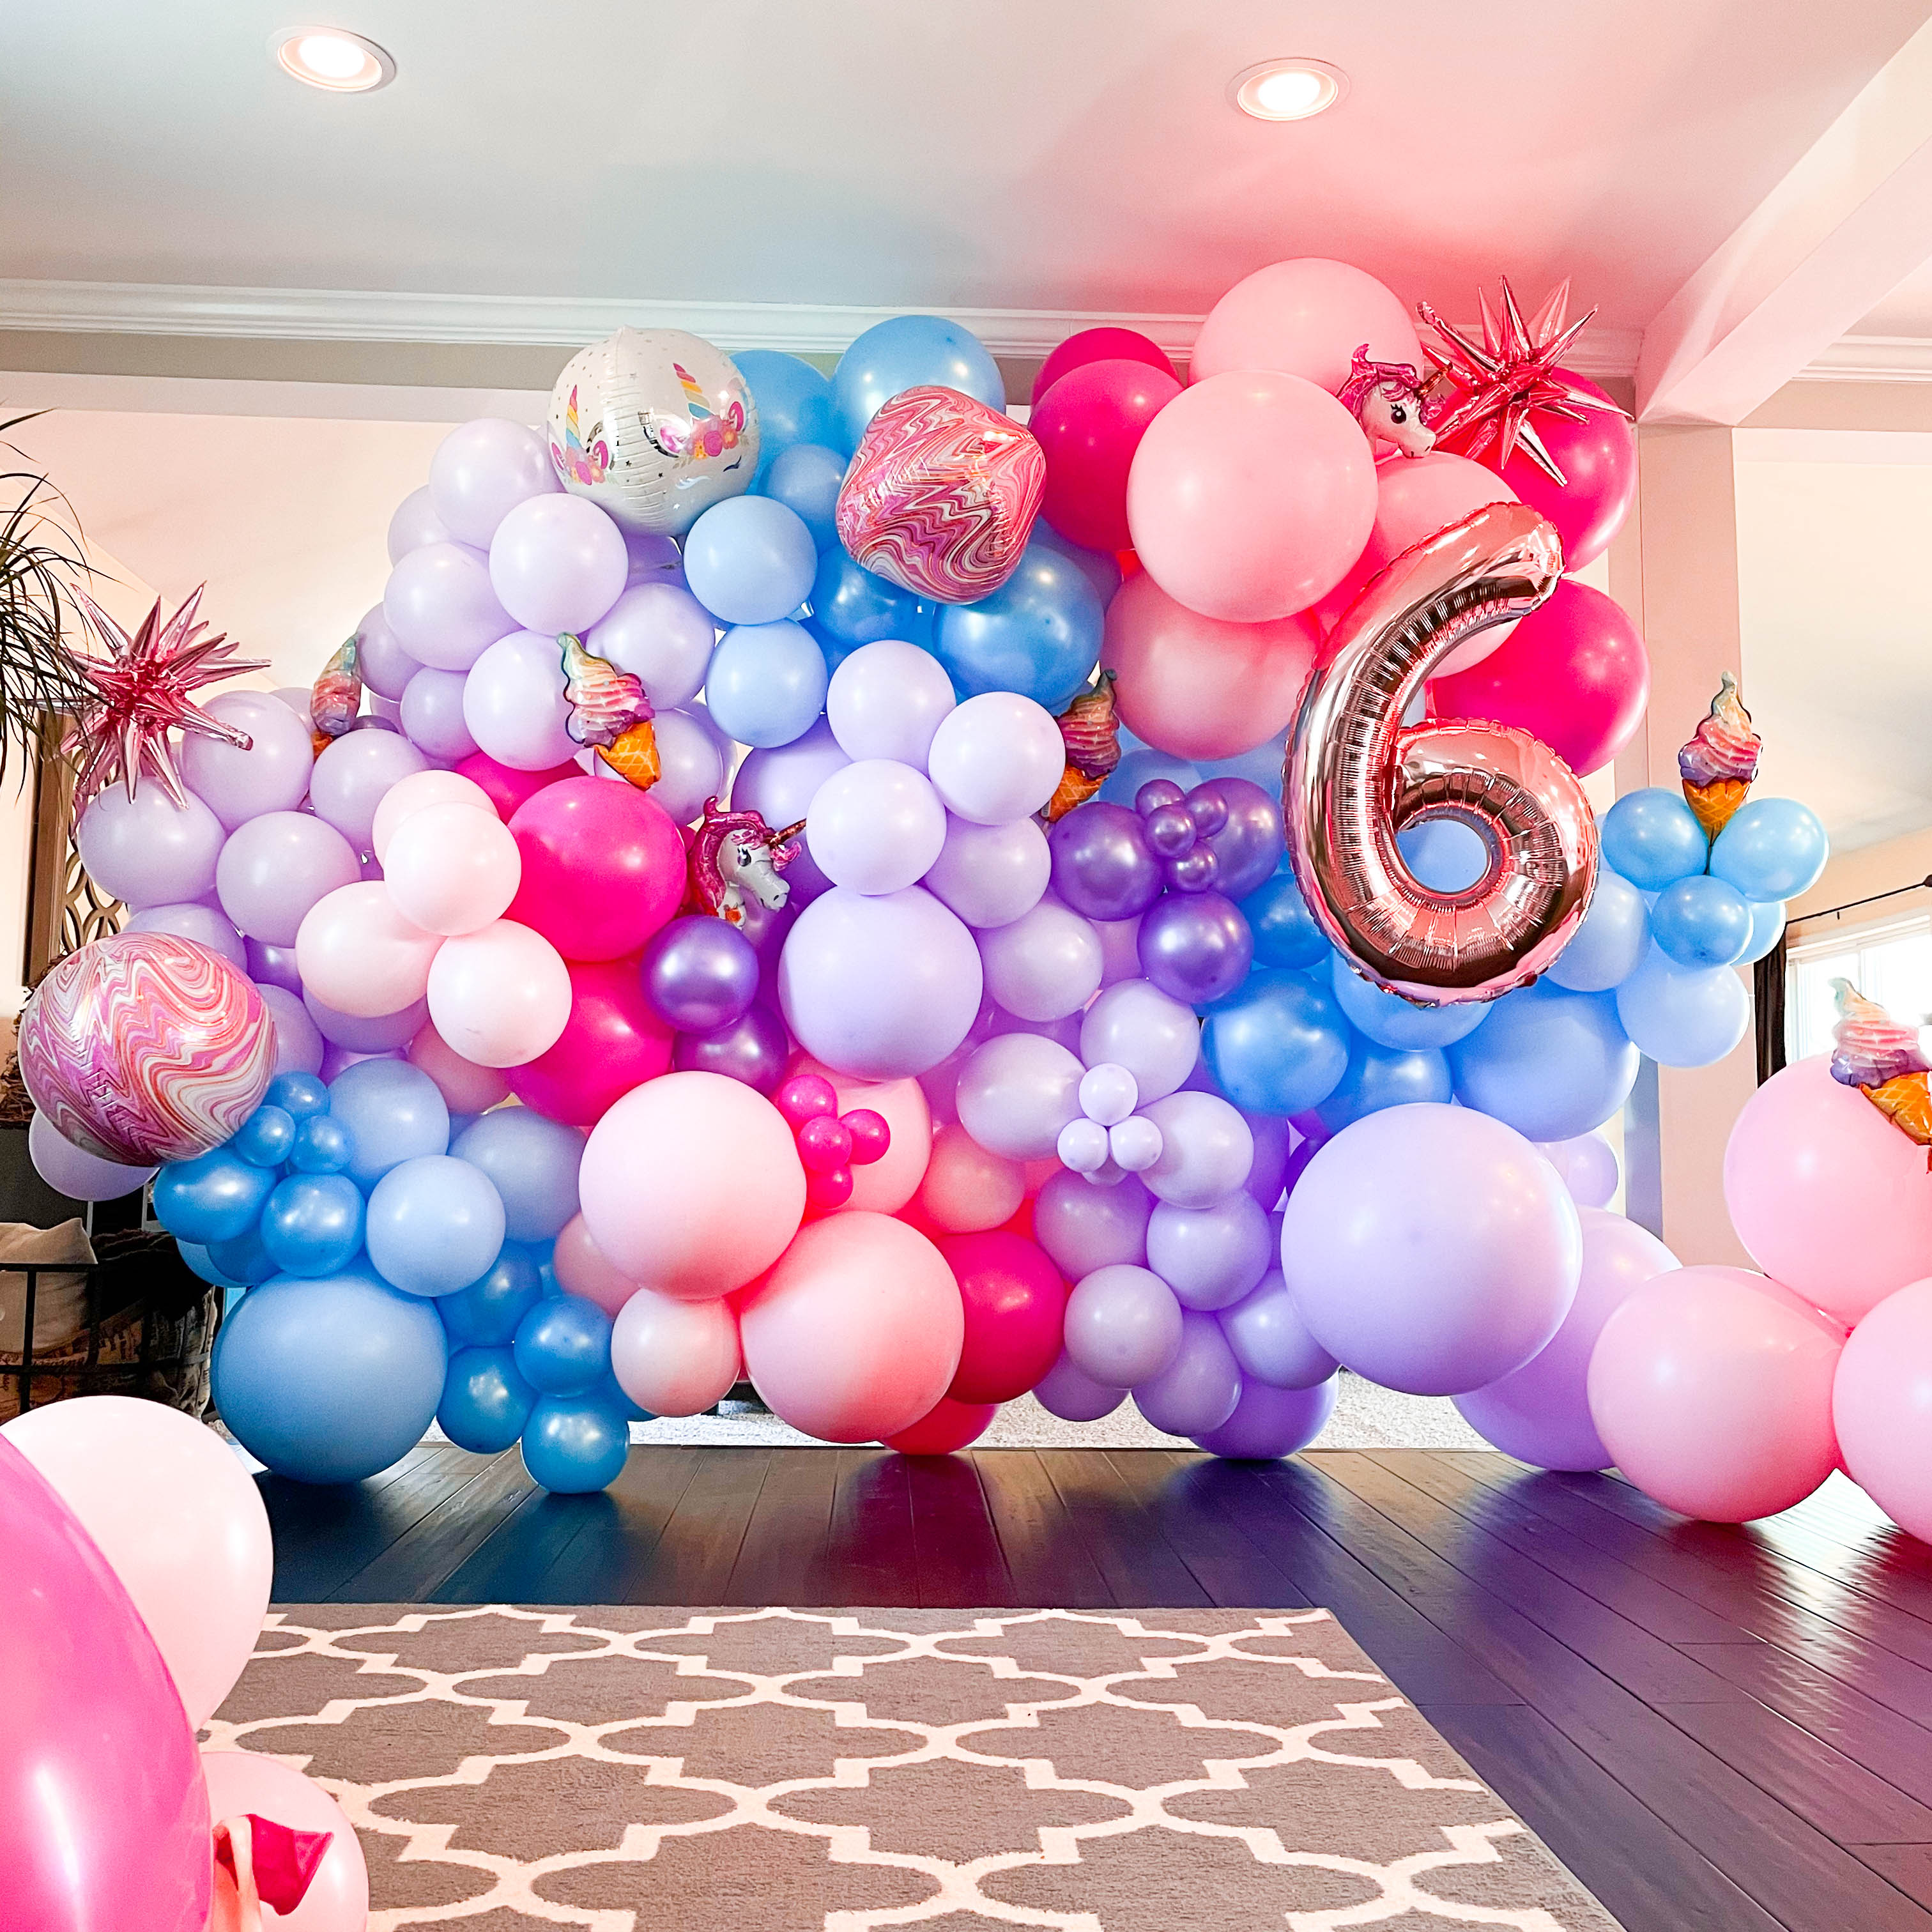 A pink, purple, and blue photo wall